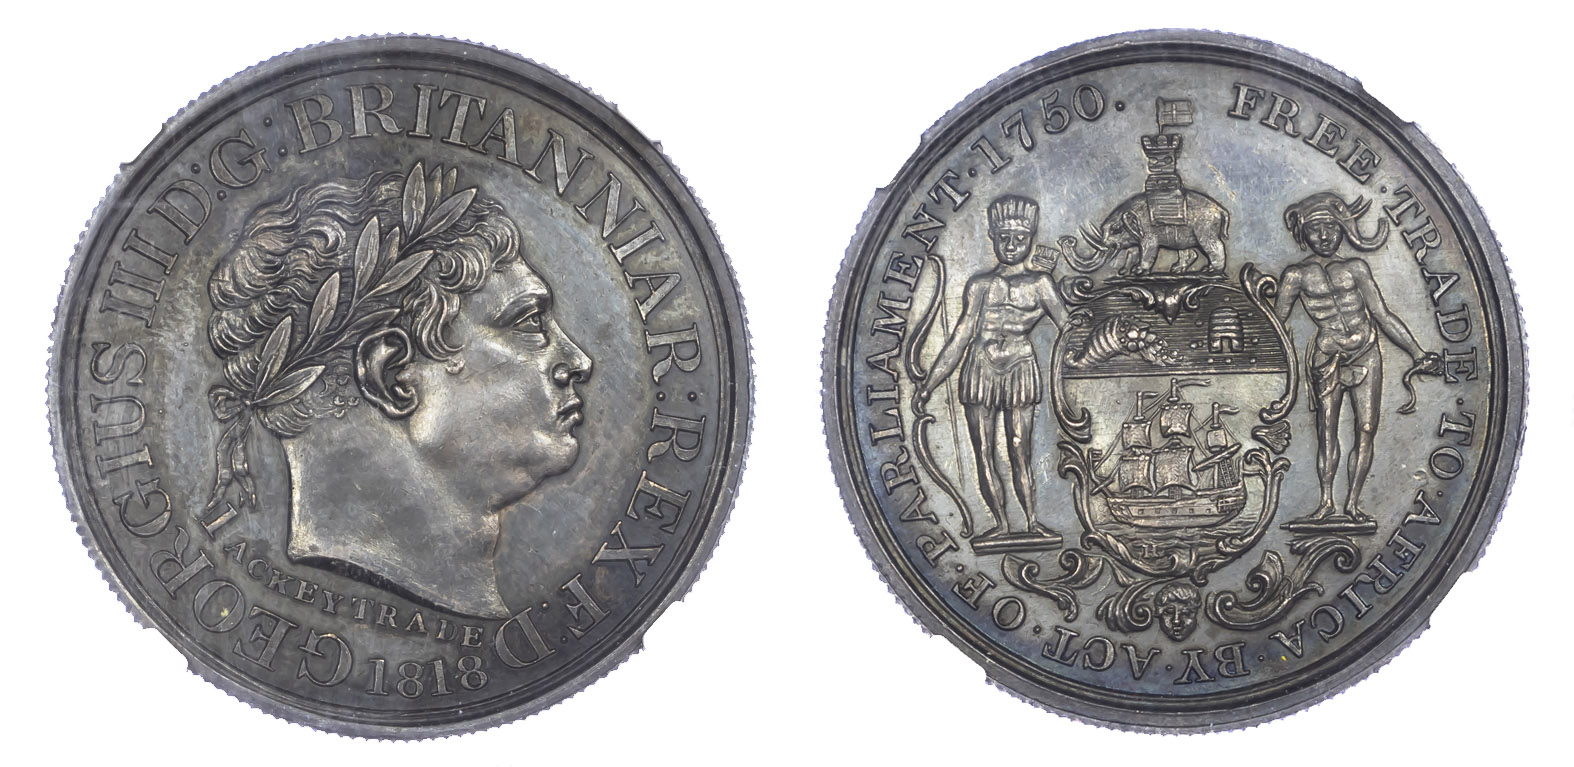 Gold Coast, George III, 1760-1820, AR Ackey, 1818